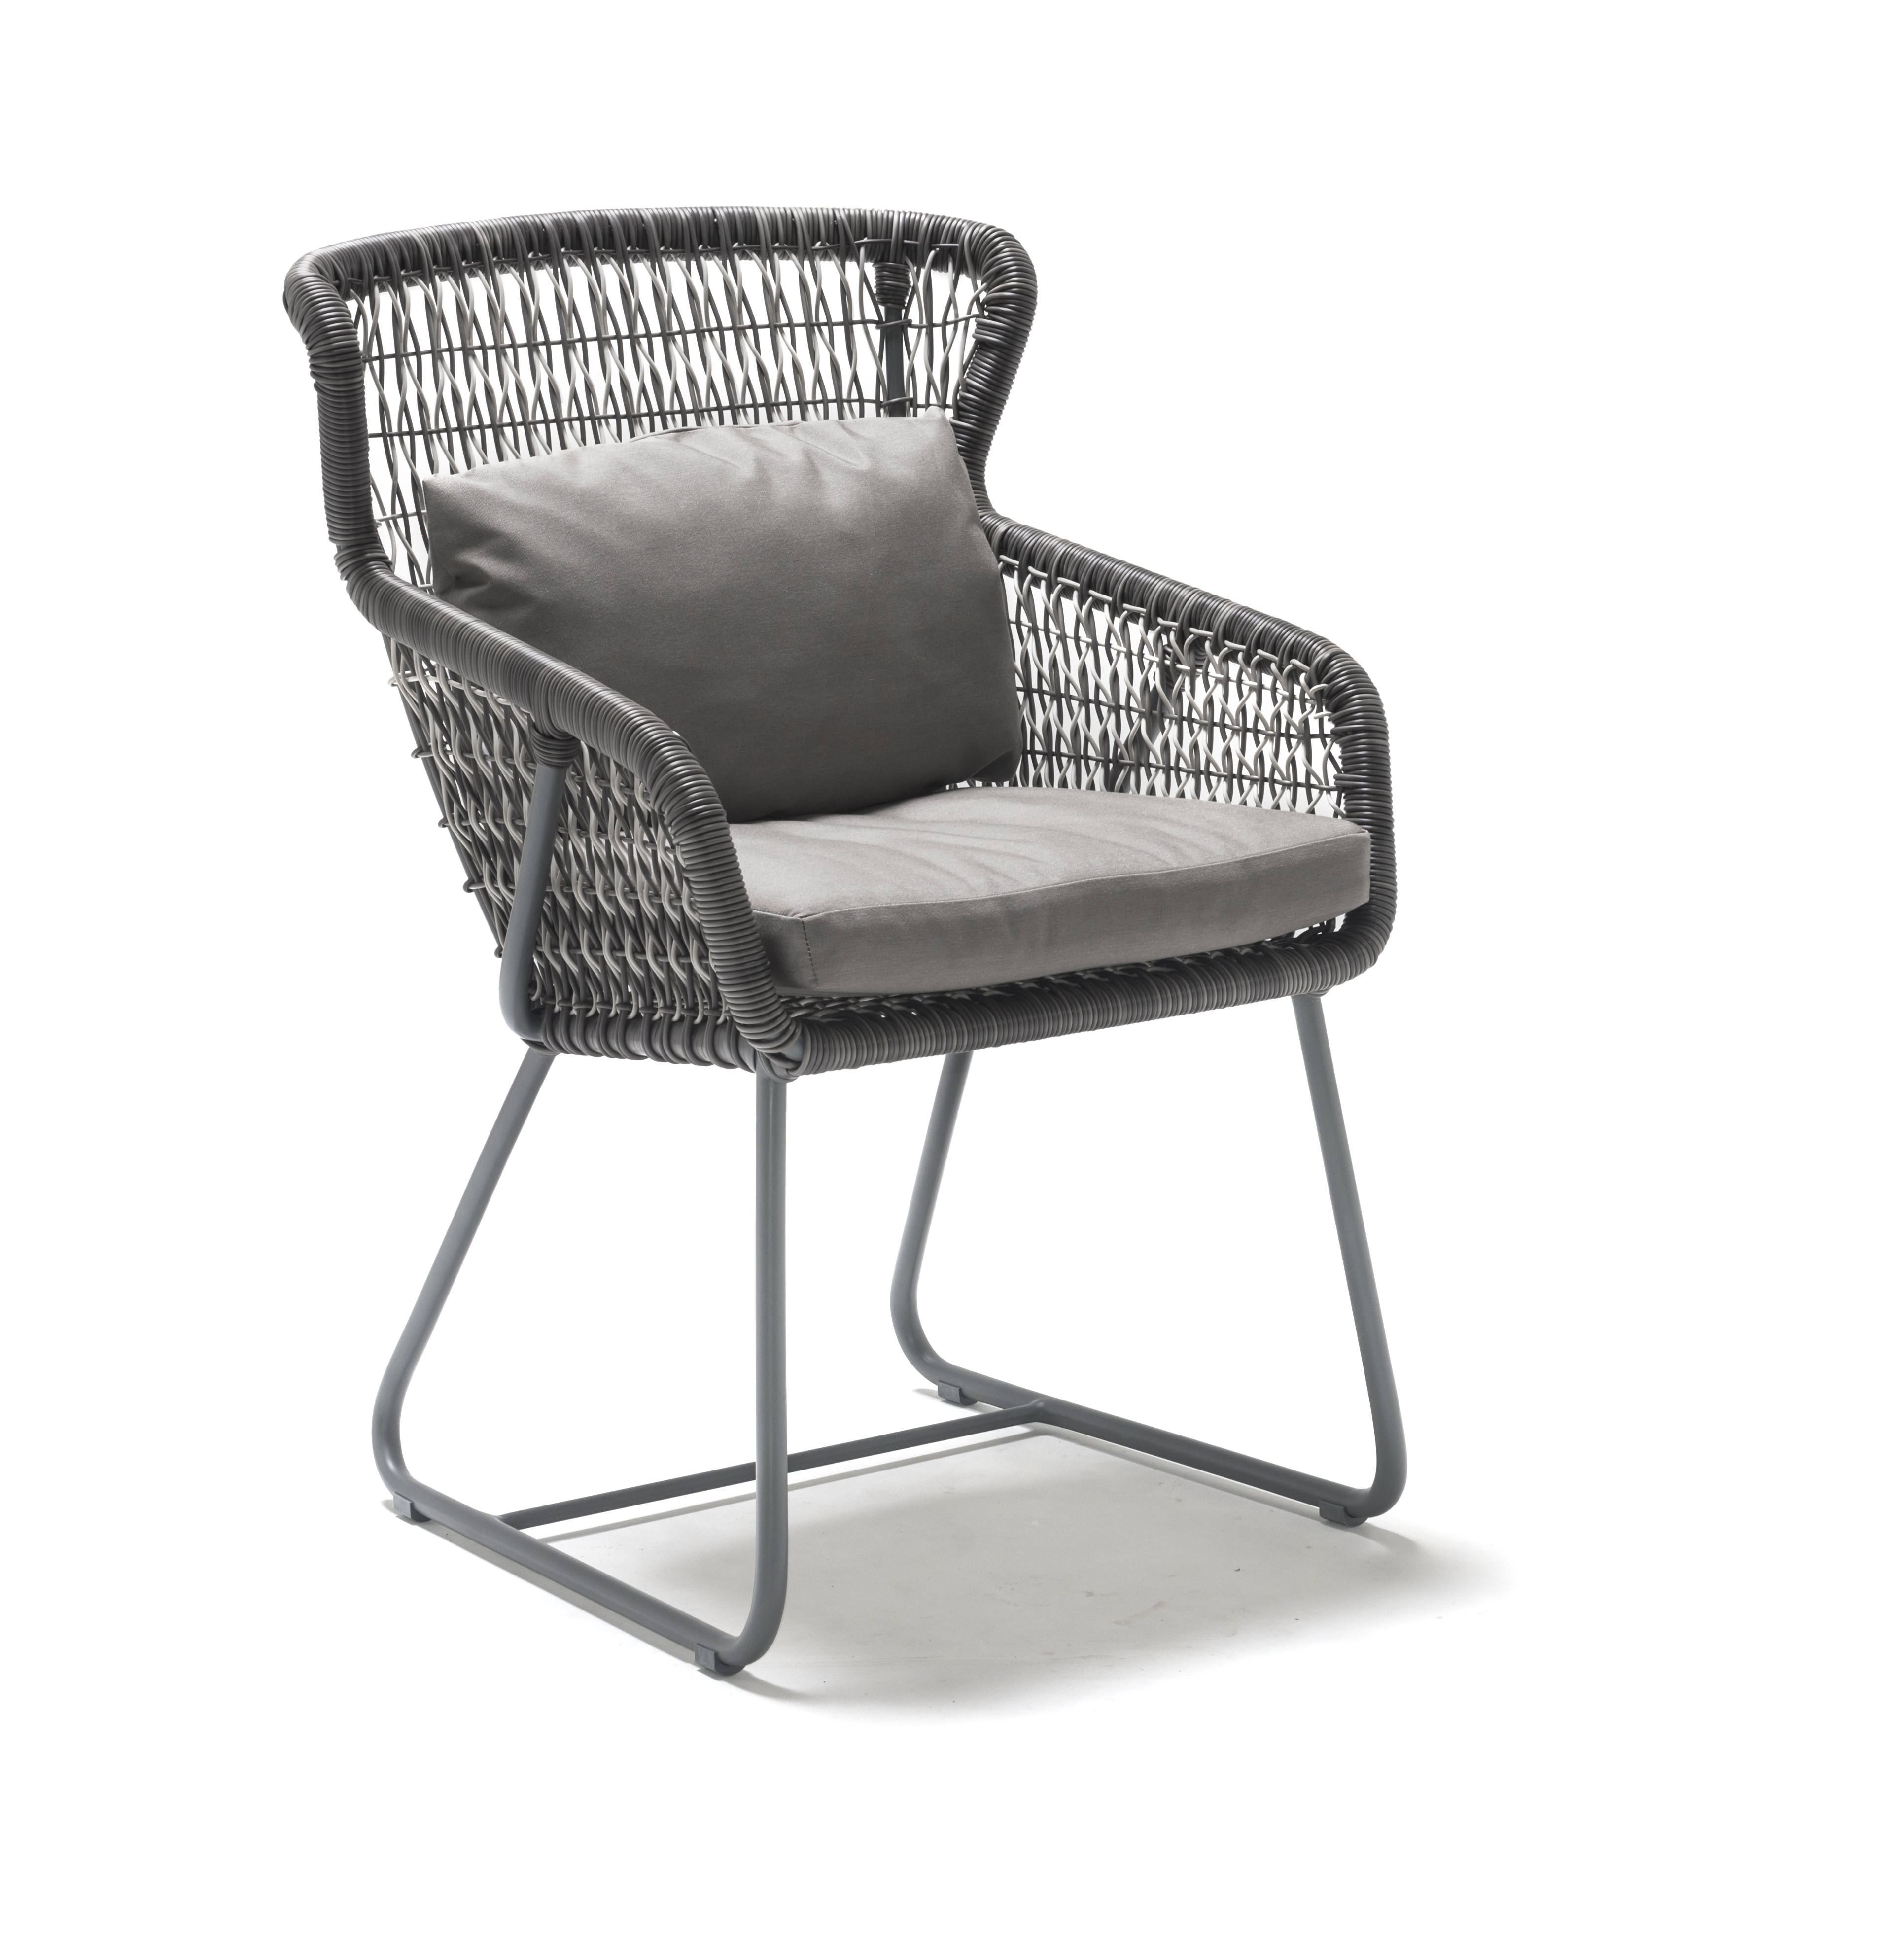 Isabella - Easy Armchair, highback